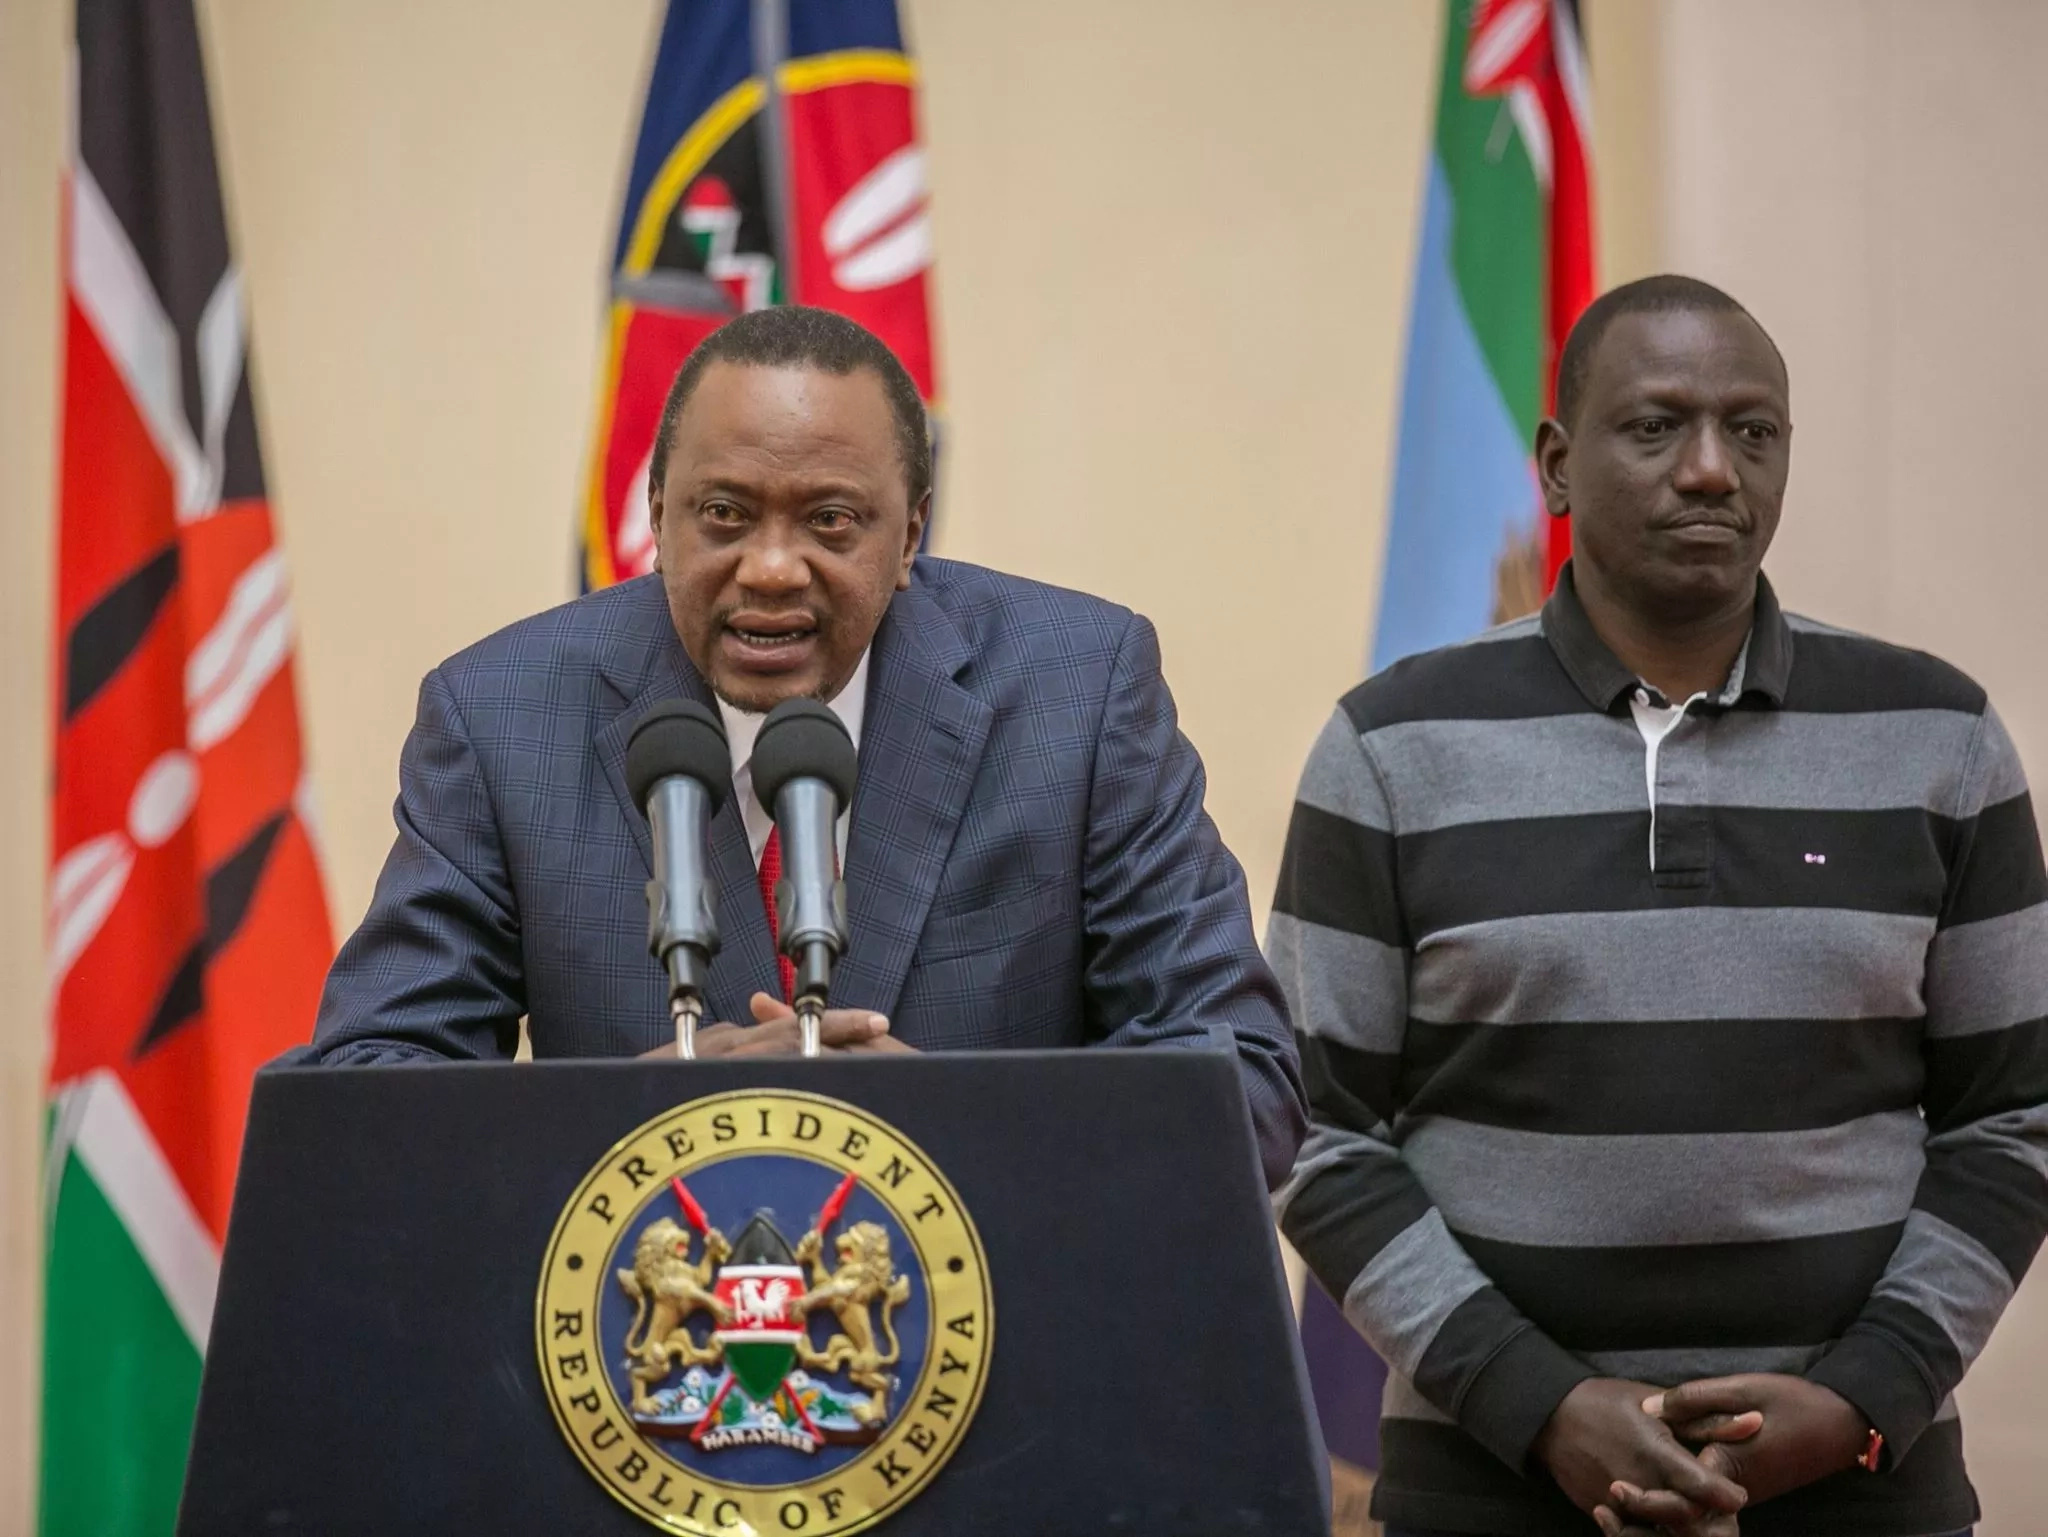 Kenyatta urges for calm after Supreme Court ruling